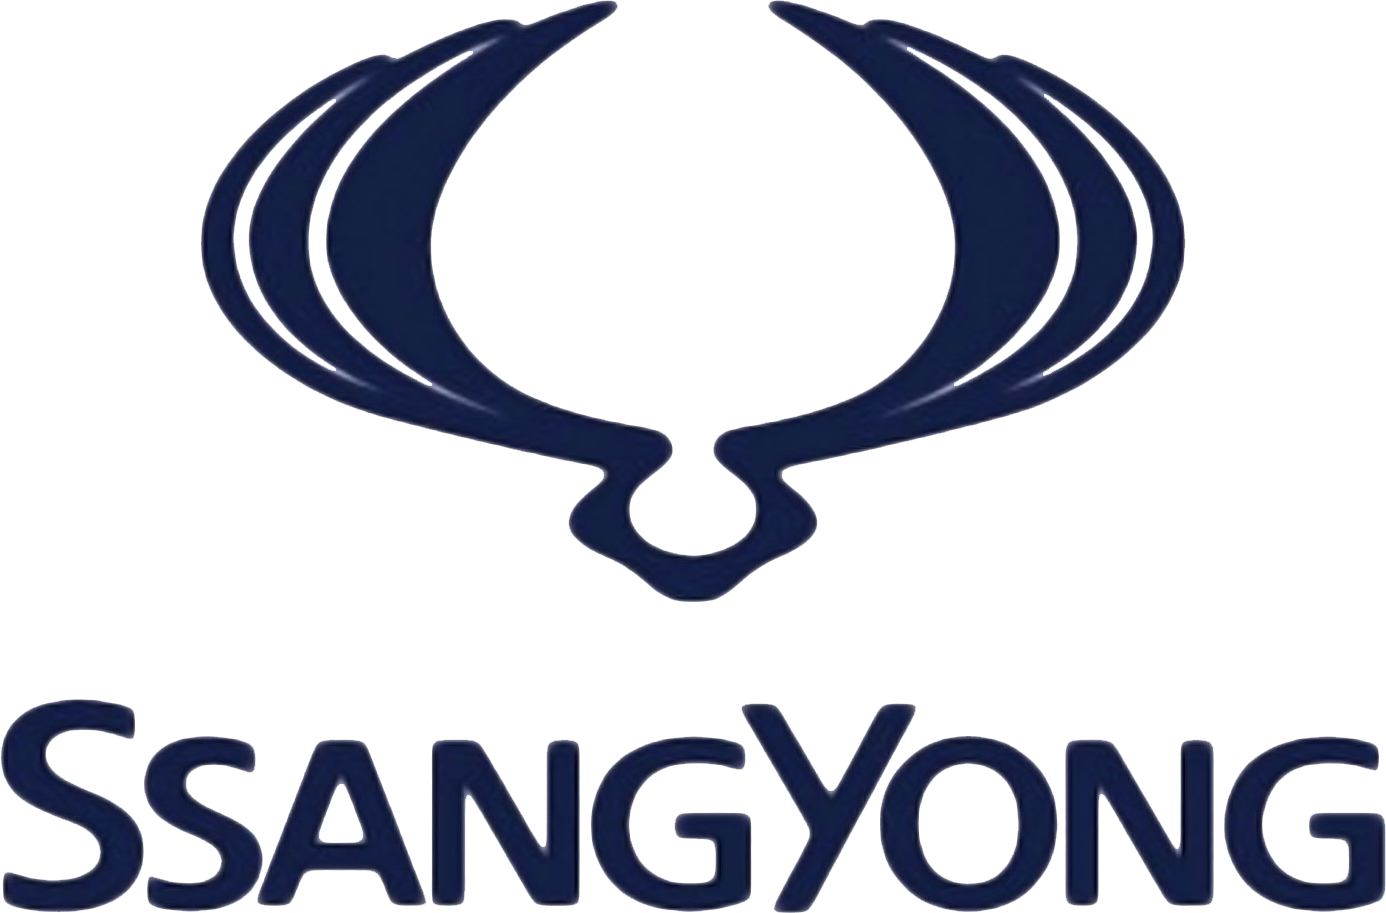 Ssangyong_tuning